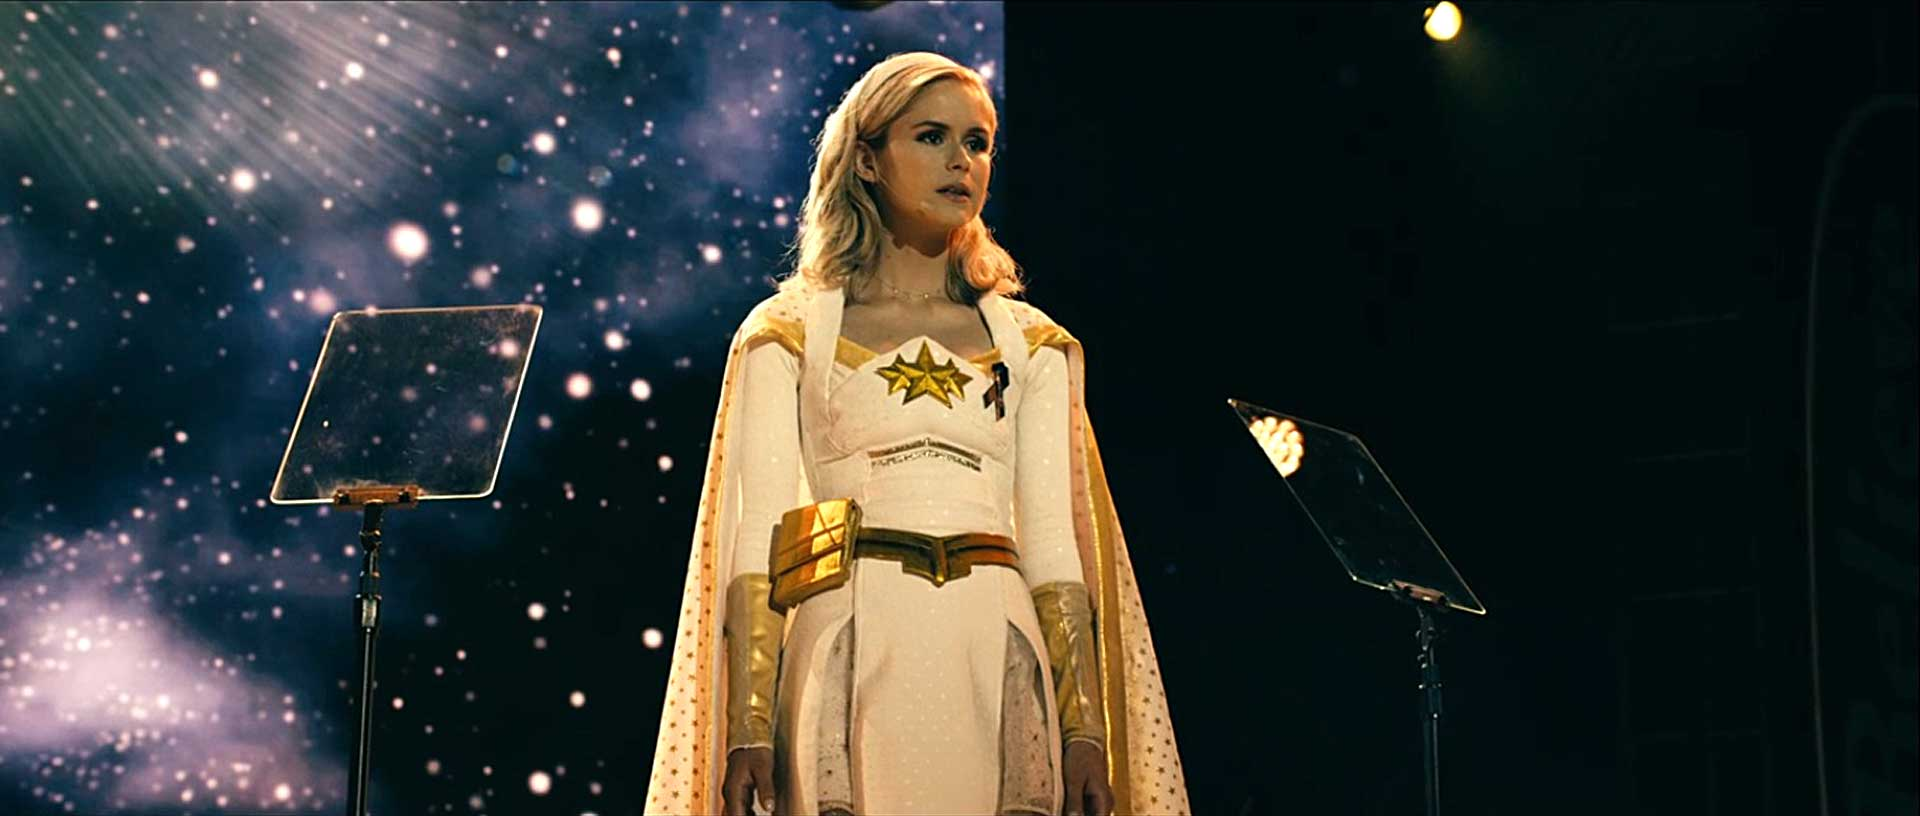 Annie January, also known as Starlight, stands upon a stage with a night sky backdrop, looking out into the distance.